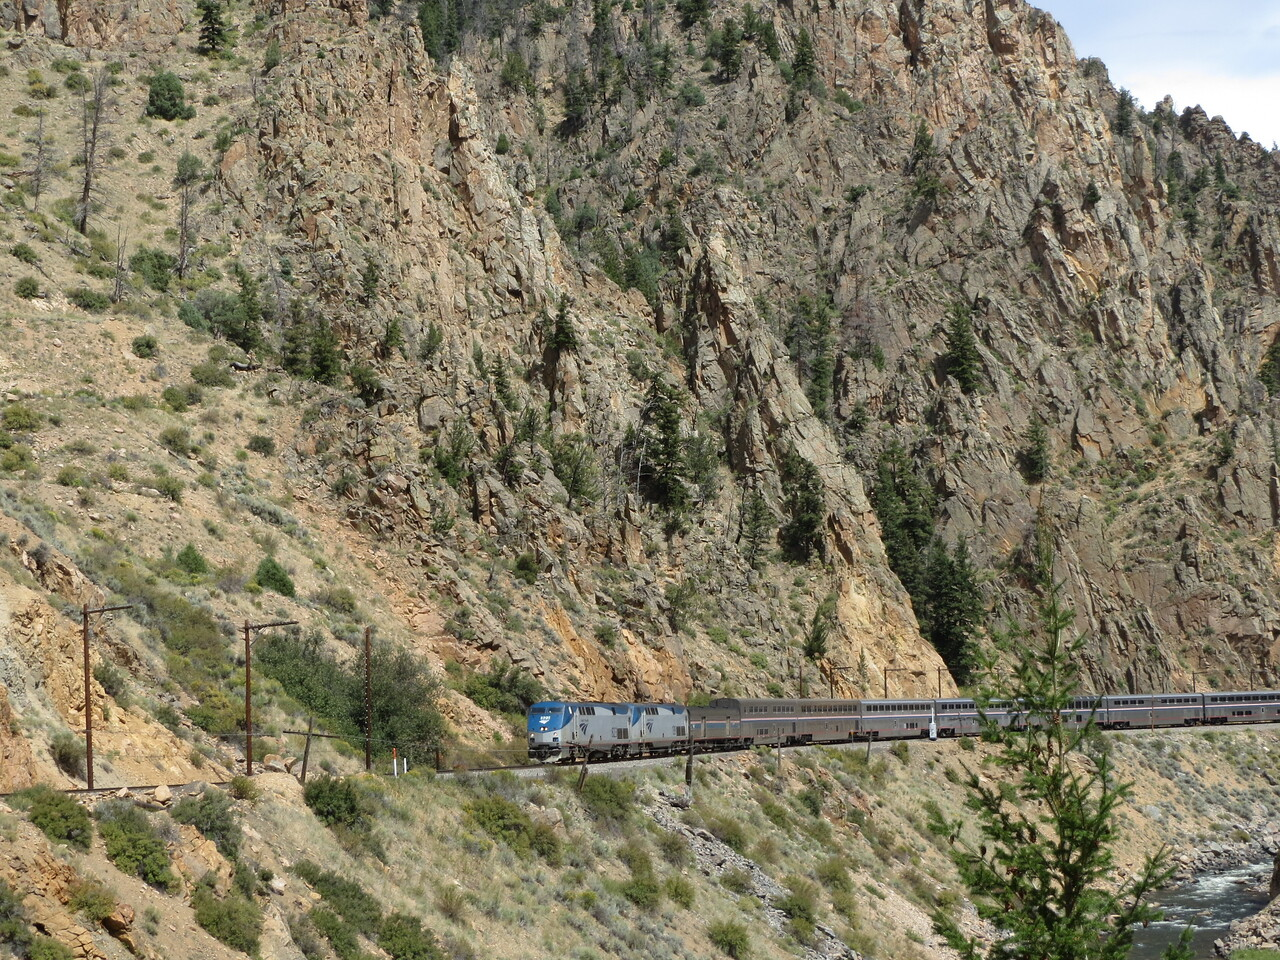 Day 3 (363 miles):  I love trains.  So here we are, blasting along the Colorado River, and this Amtrak train roars through the canyon, whistle wailing, and the clicking of the wheels echoing up and off the rocks.  It got me a little hard, I have to admit.